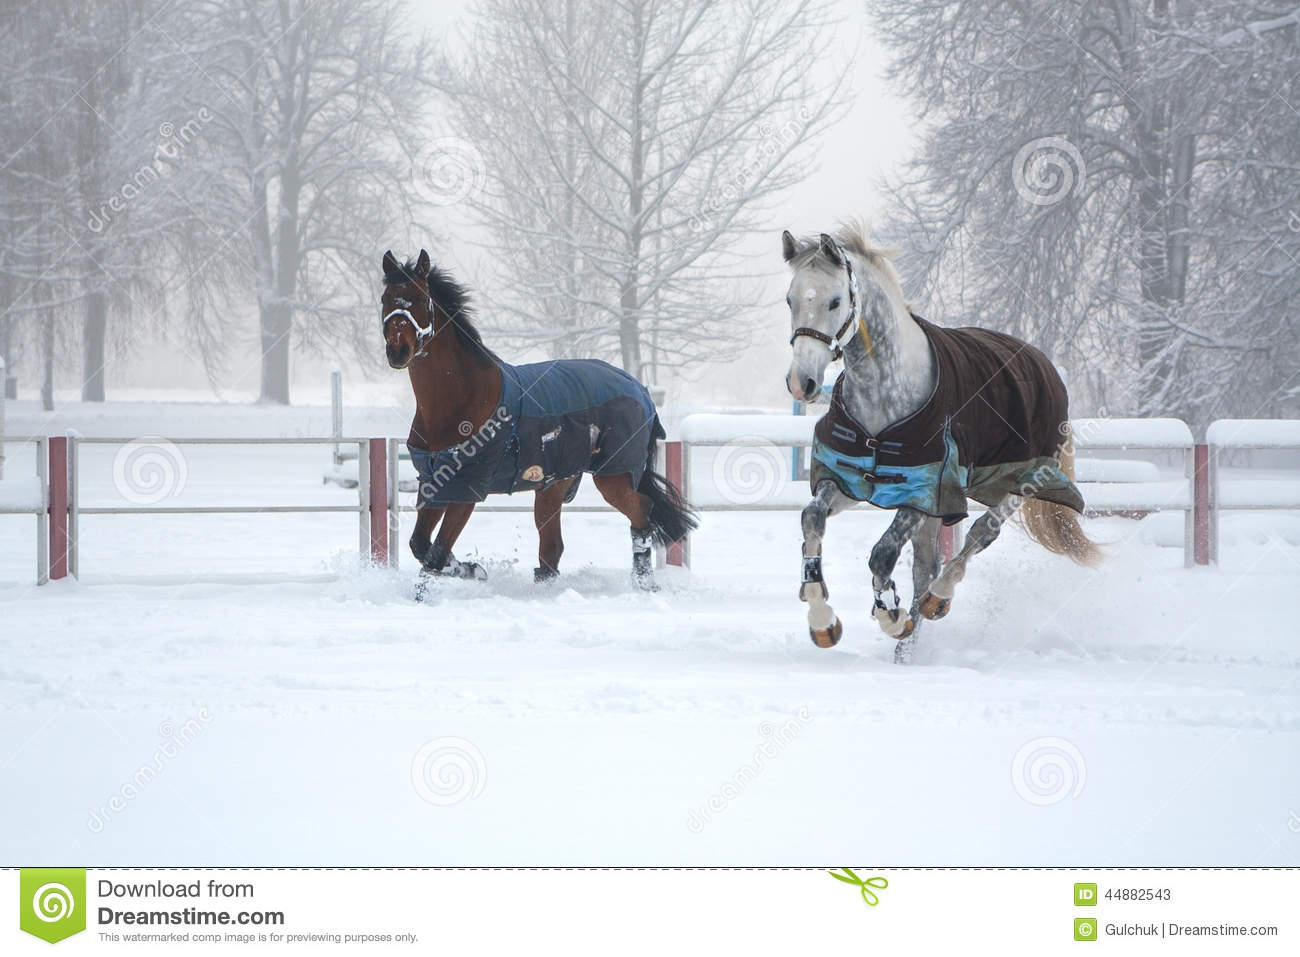 Two horses running on snow misty morning